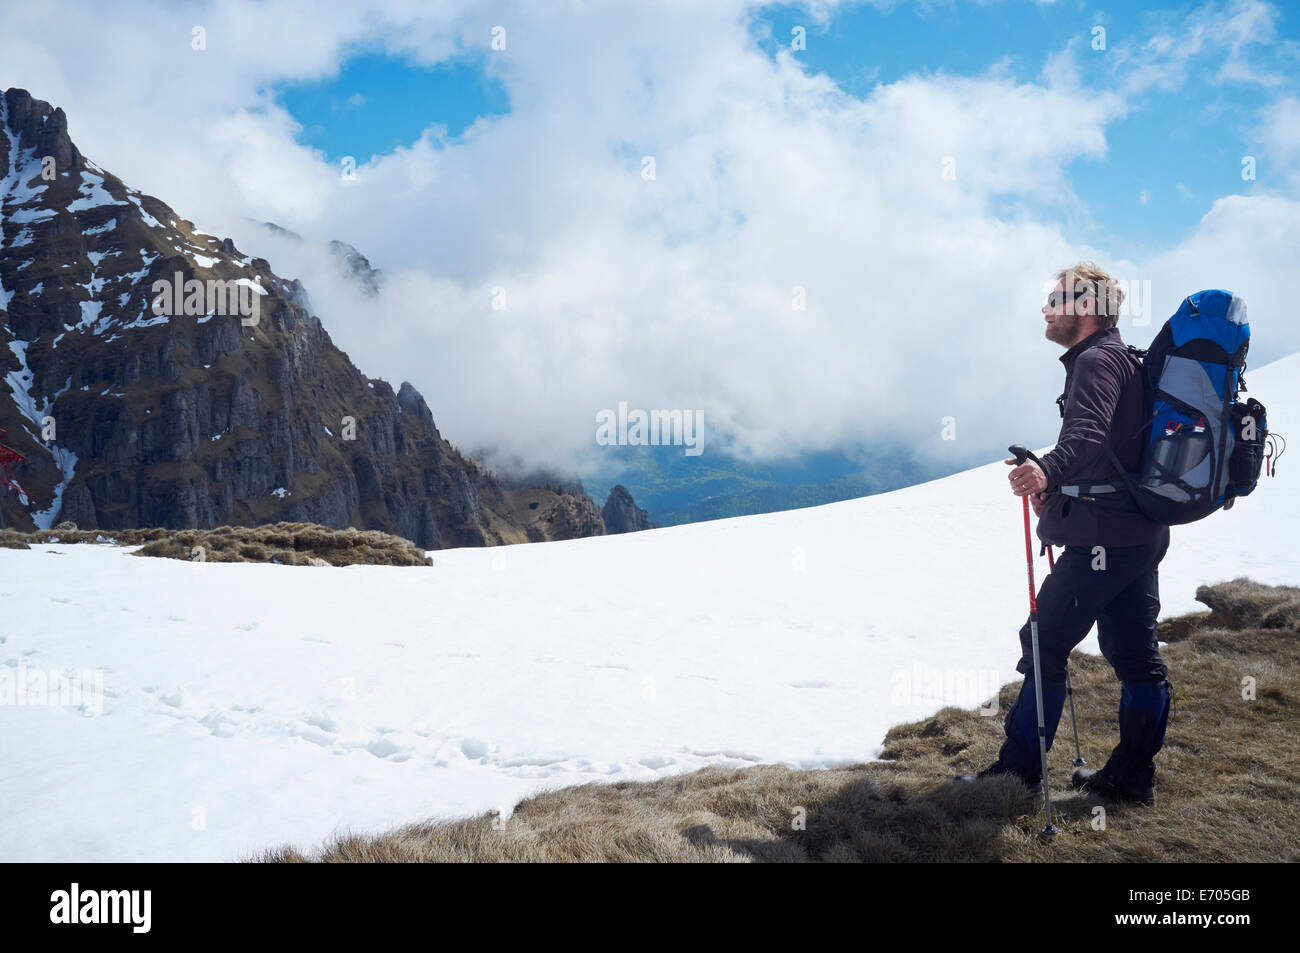 Mature man standing in snow, Bucegi Mountains, Transylvania, Romania - Stock Image